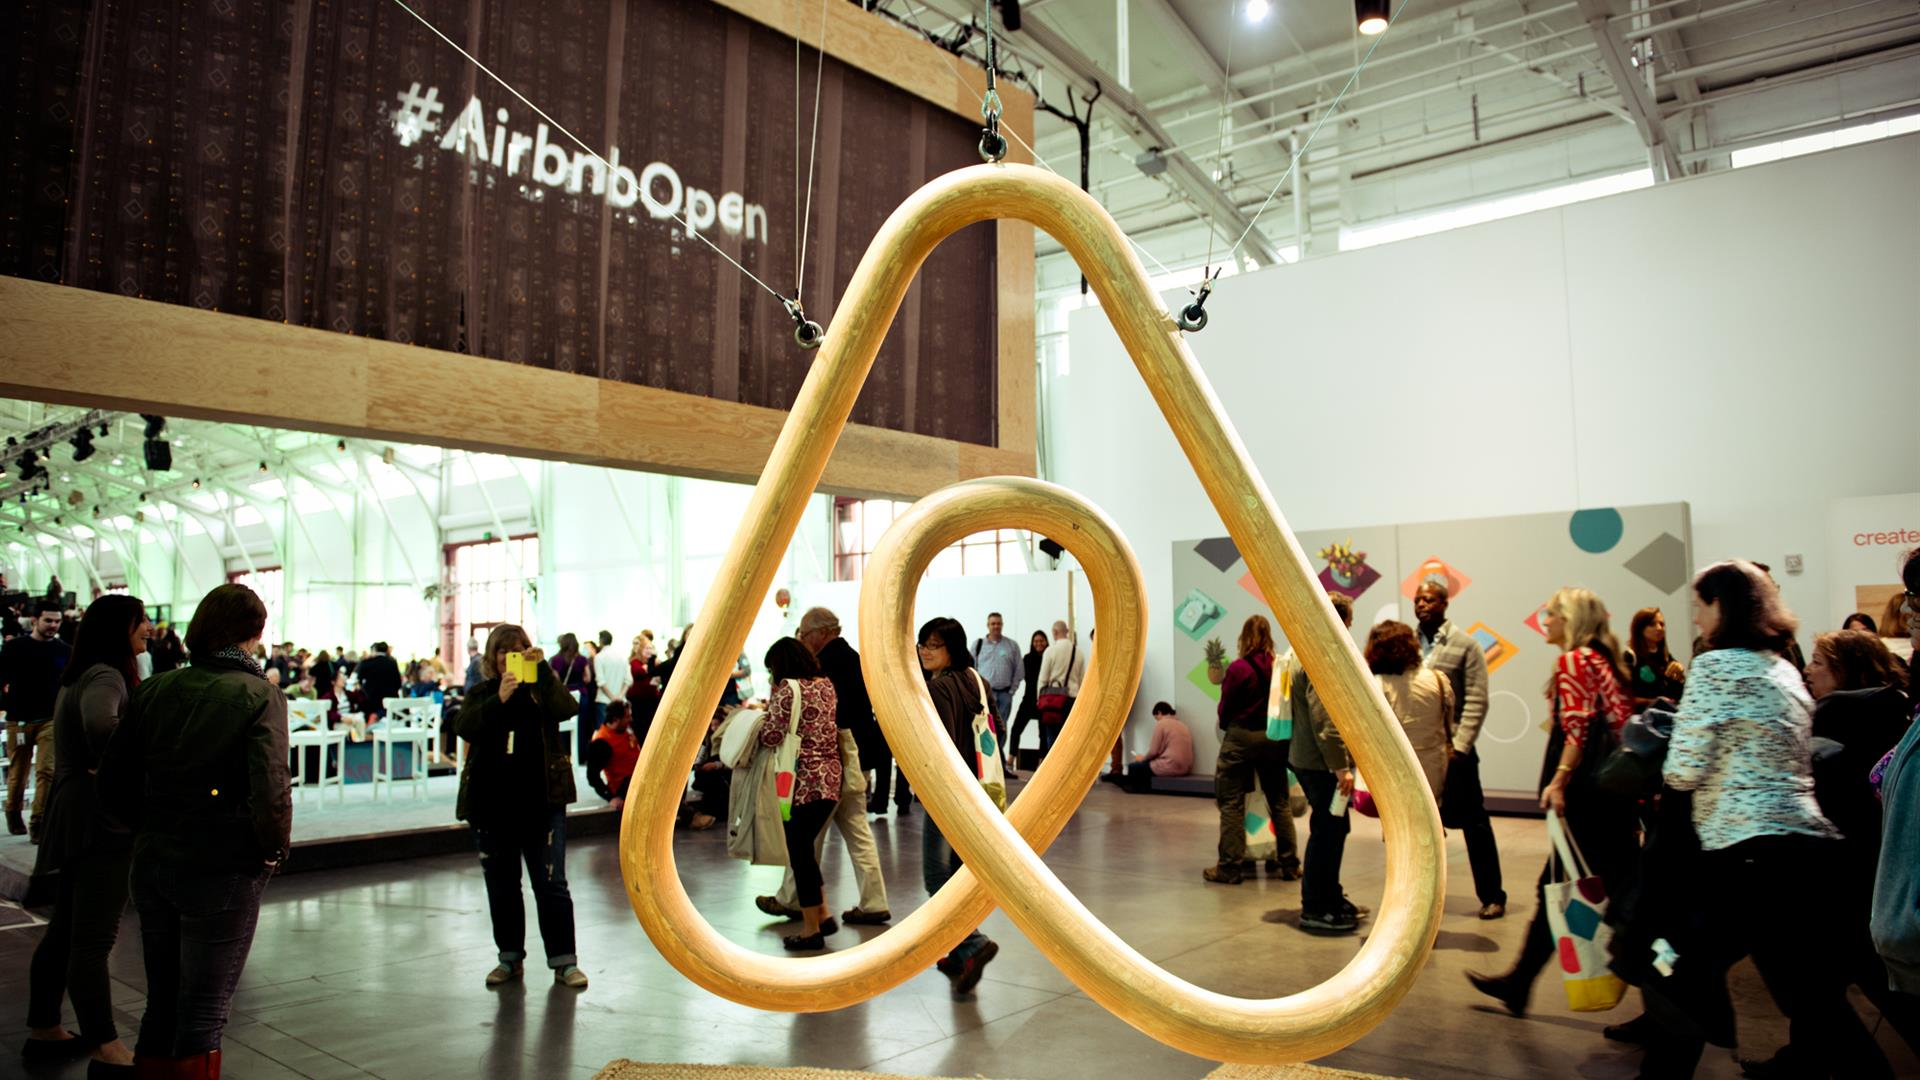 Airbnb Open SF Gabriela Herman 21Nov2014 GNH2612